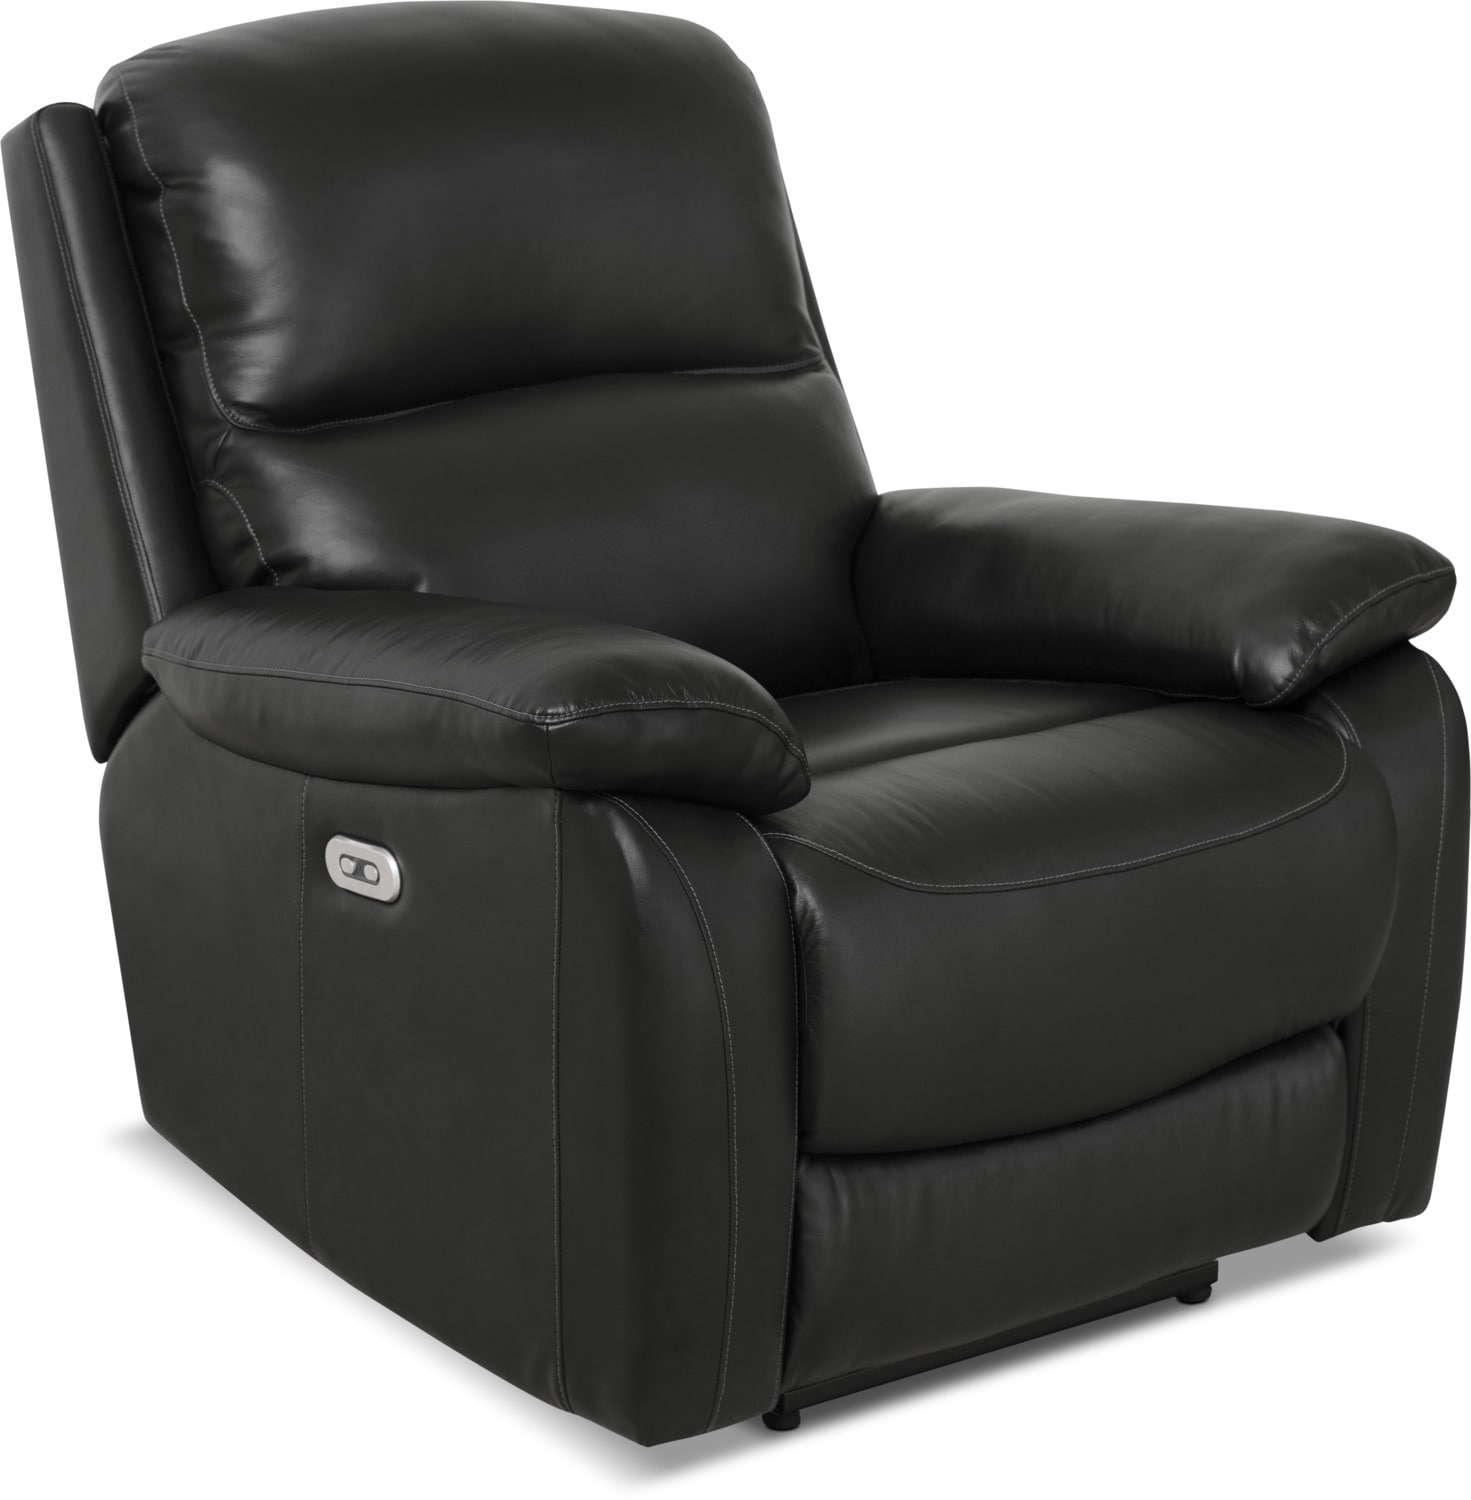 Grove Genuine Leather Power Reclining Chair with Adjustable Headrest – Black